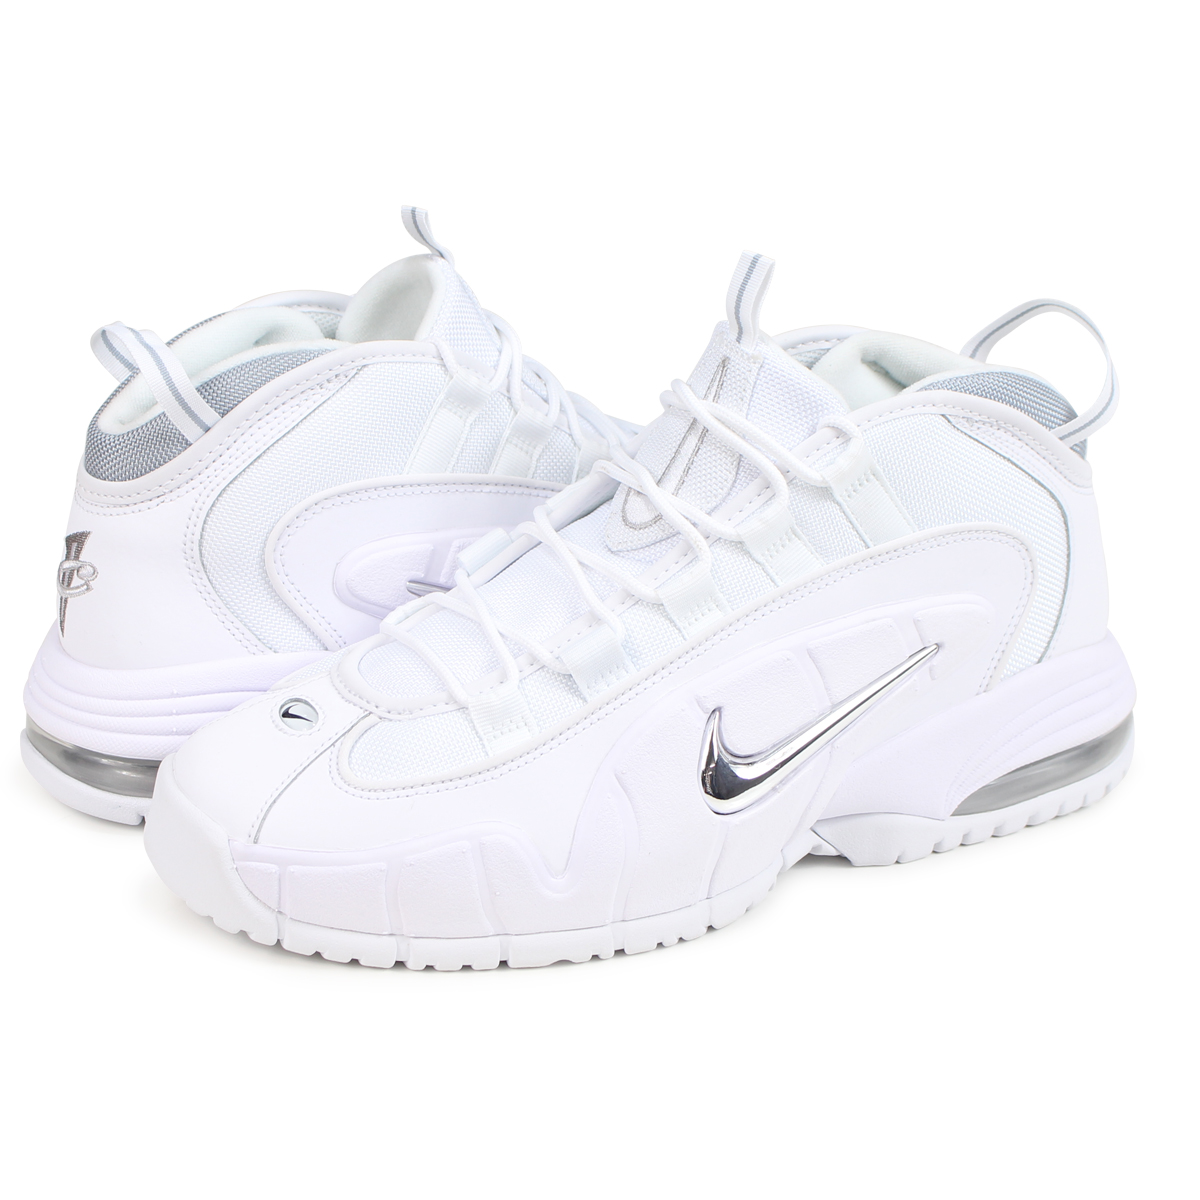 sneakers for cheap b0075 76fde Product Information